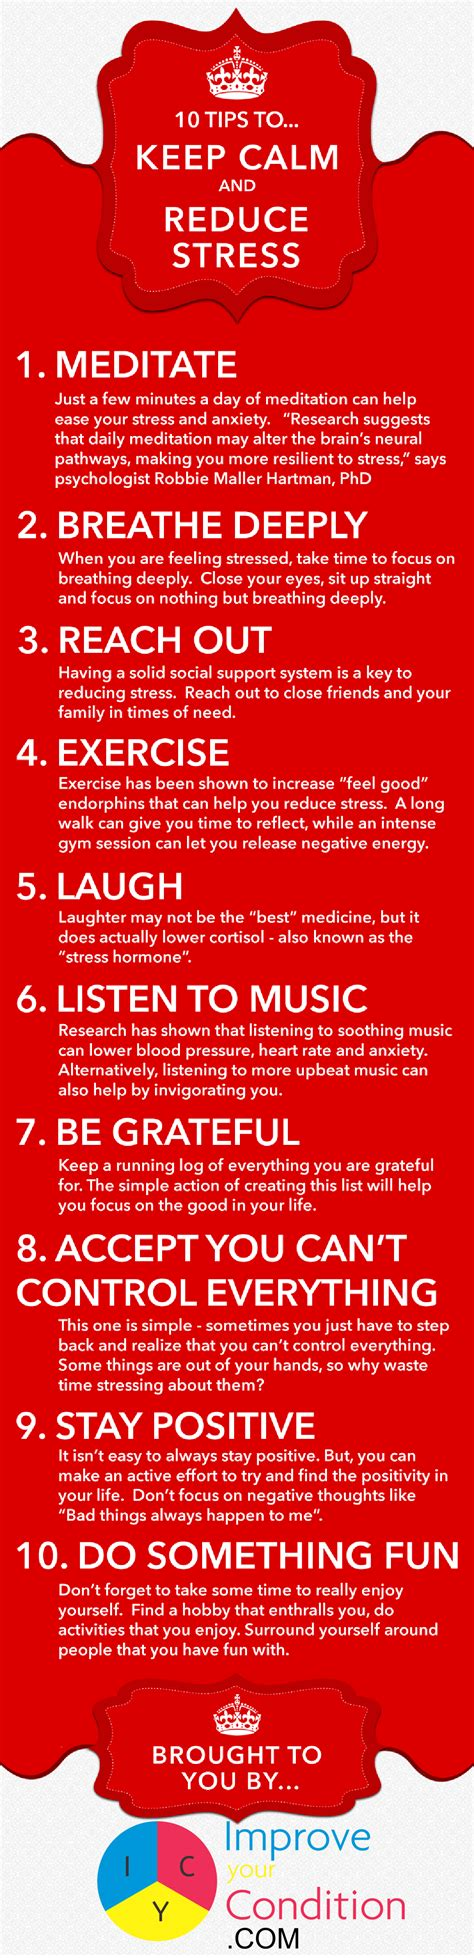 10 Stress Relief Tips For Caregivers [infographic] Dailycaring